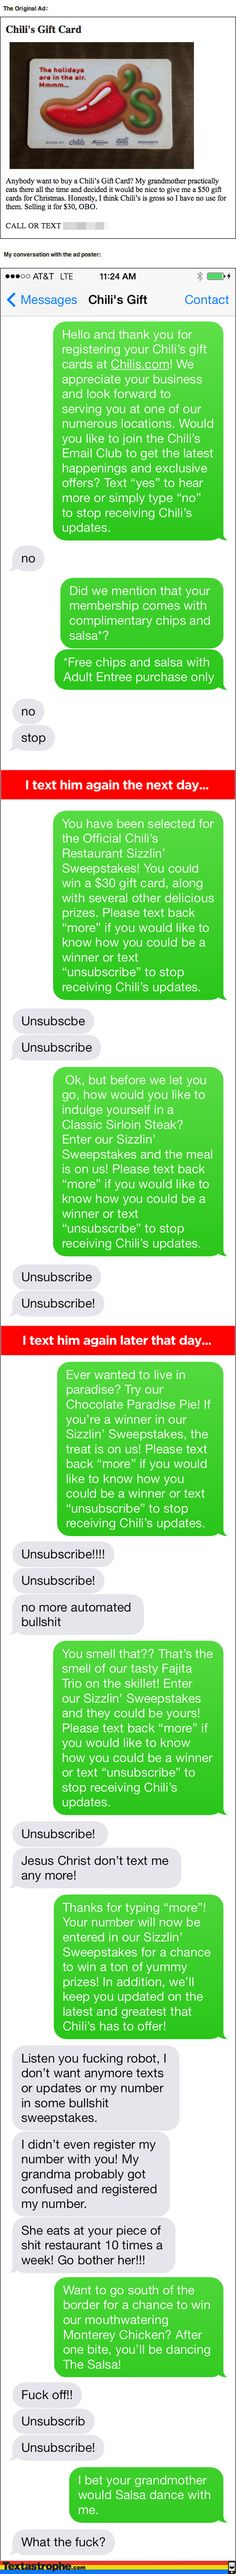 Bro Awesomely Trolls a Man on Craigslist Who's Selling a Chili's Gift - BroBible.com